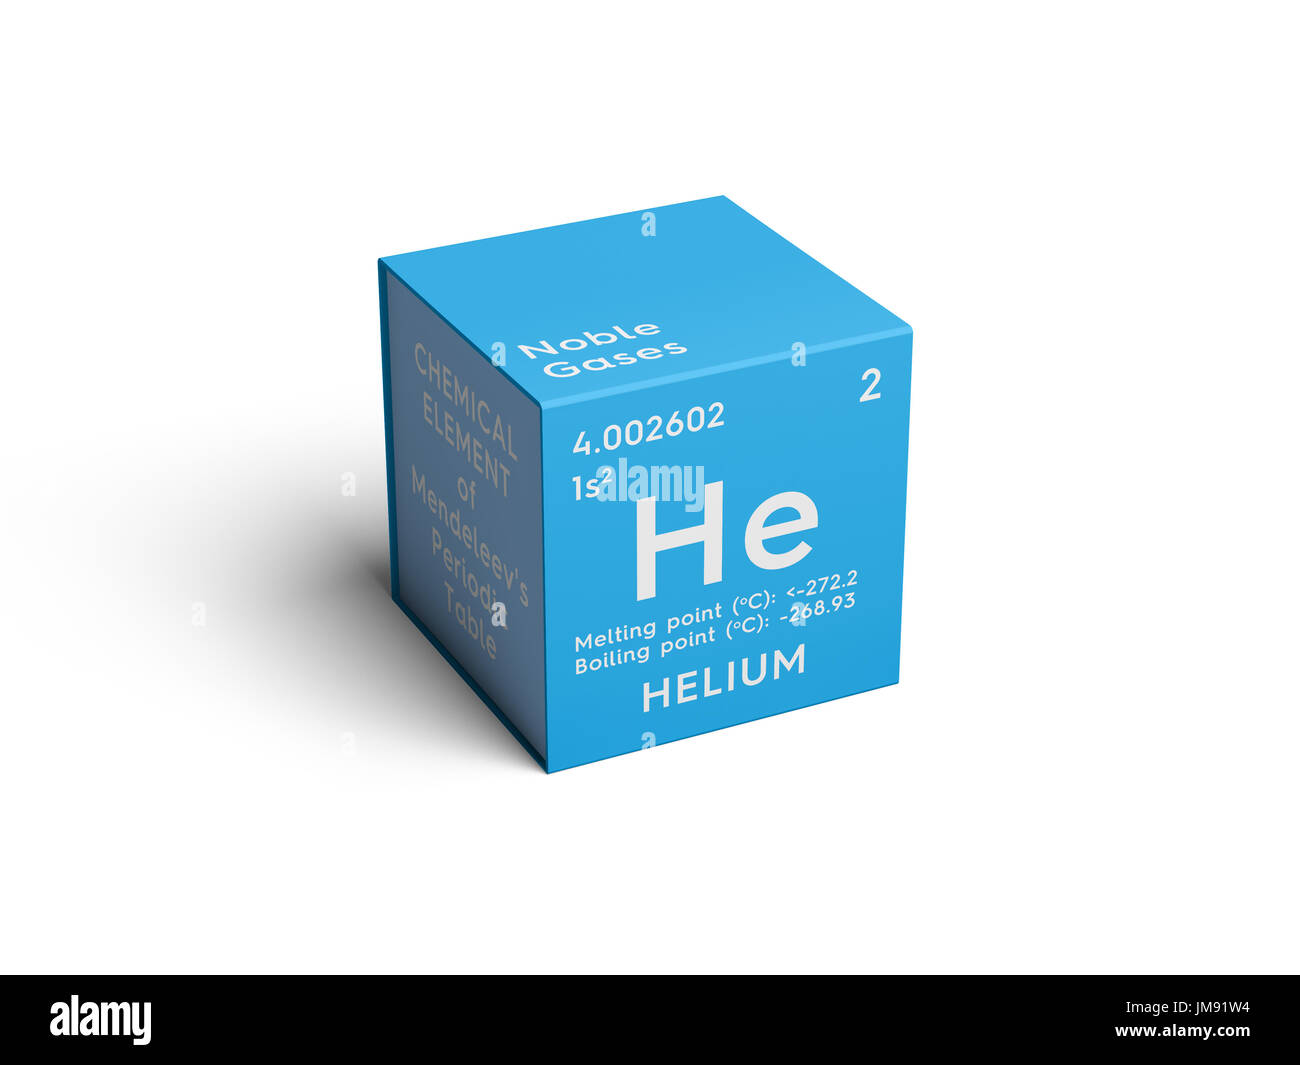 Helium noble gases chemical element of mendeleevs periodic helium noble gases chemical element of mendeleevs periodic table helium in square cube creative concept buycottarizona